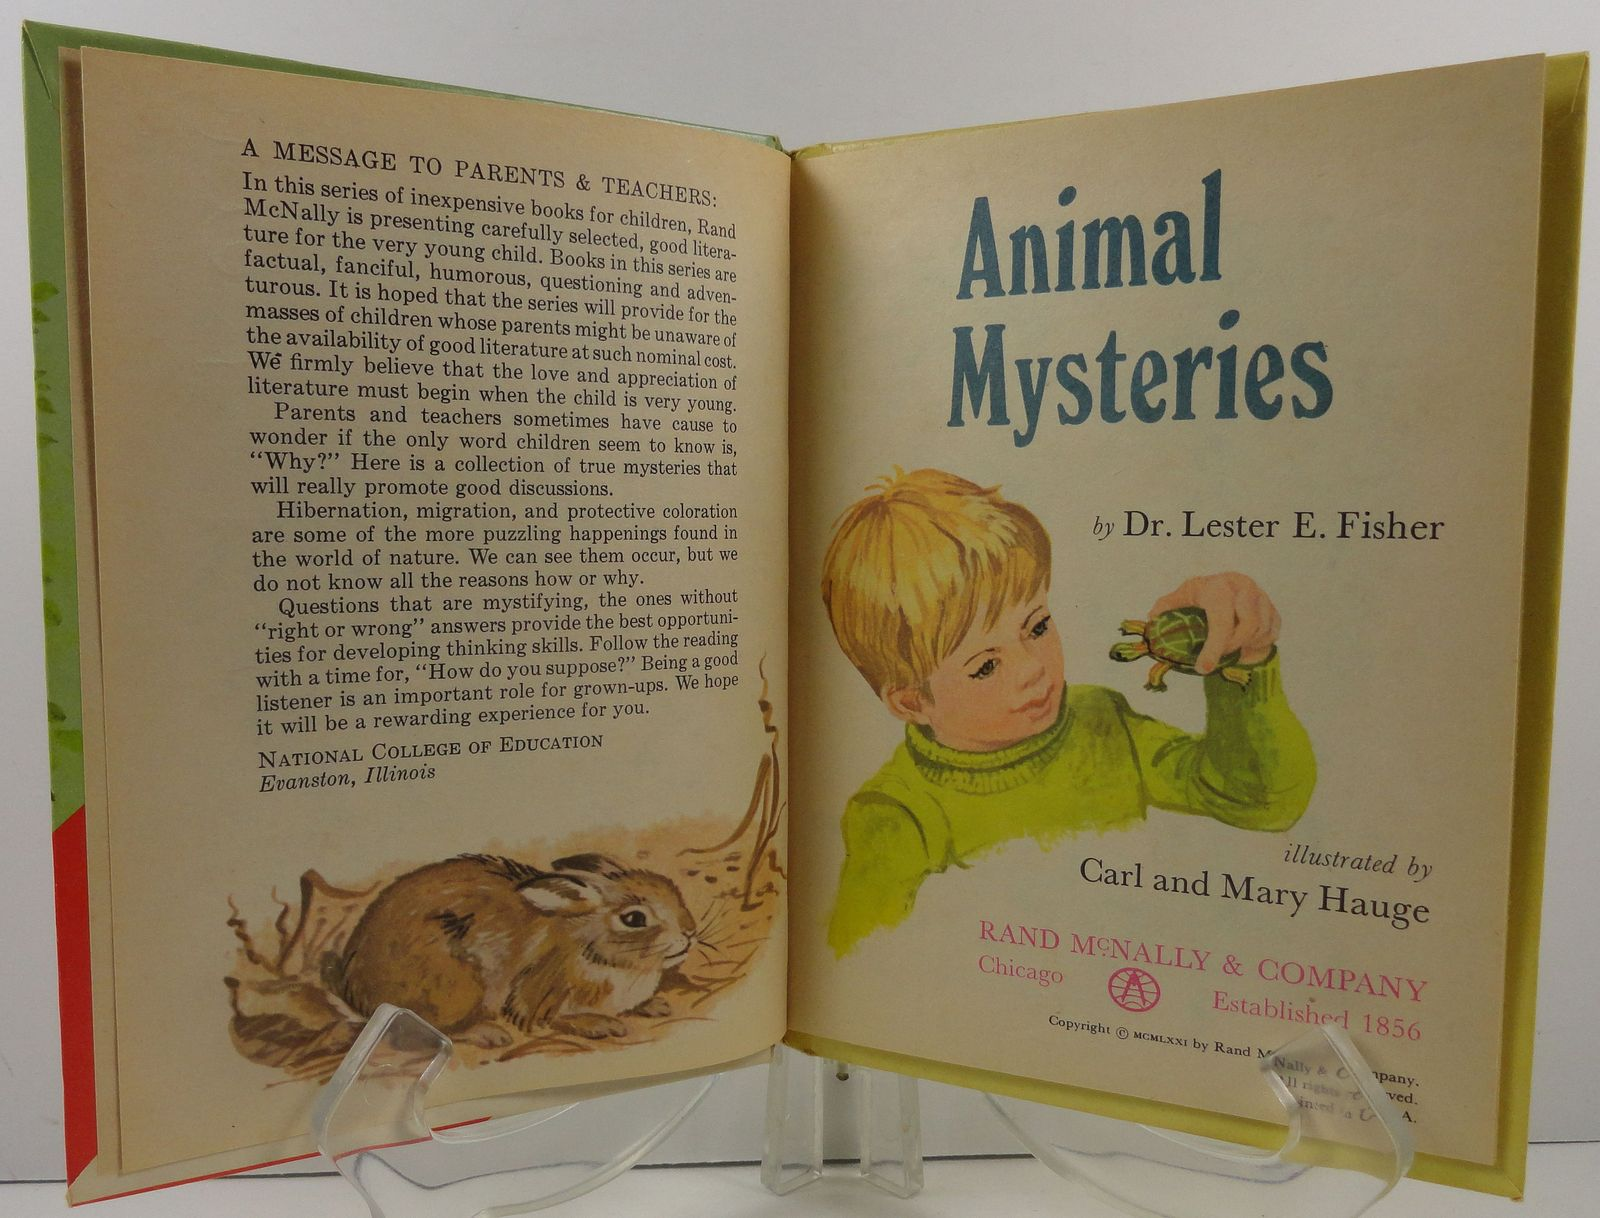 Animal Mysteries by Dr. Lester E. Fisher Start Right Elf Book